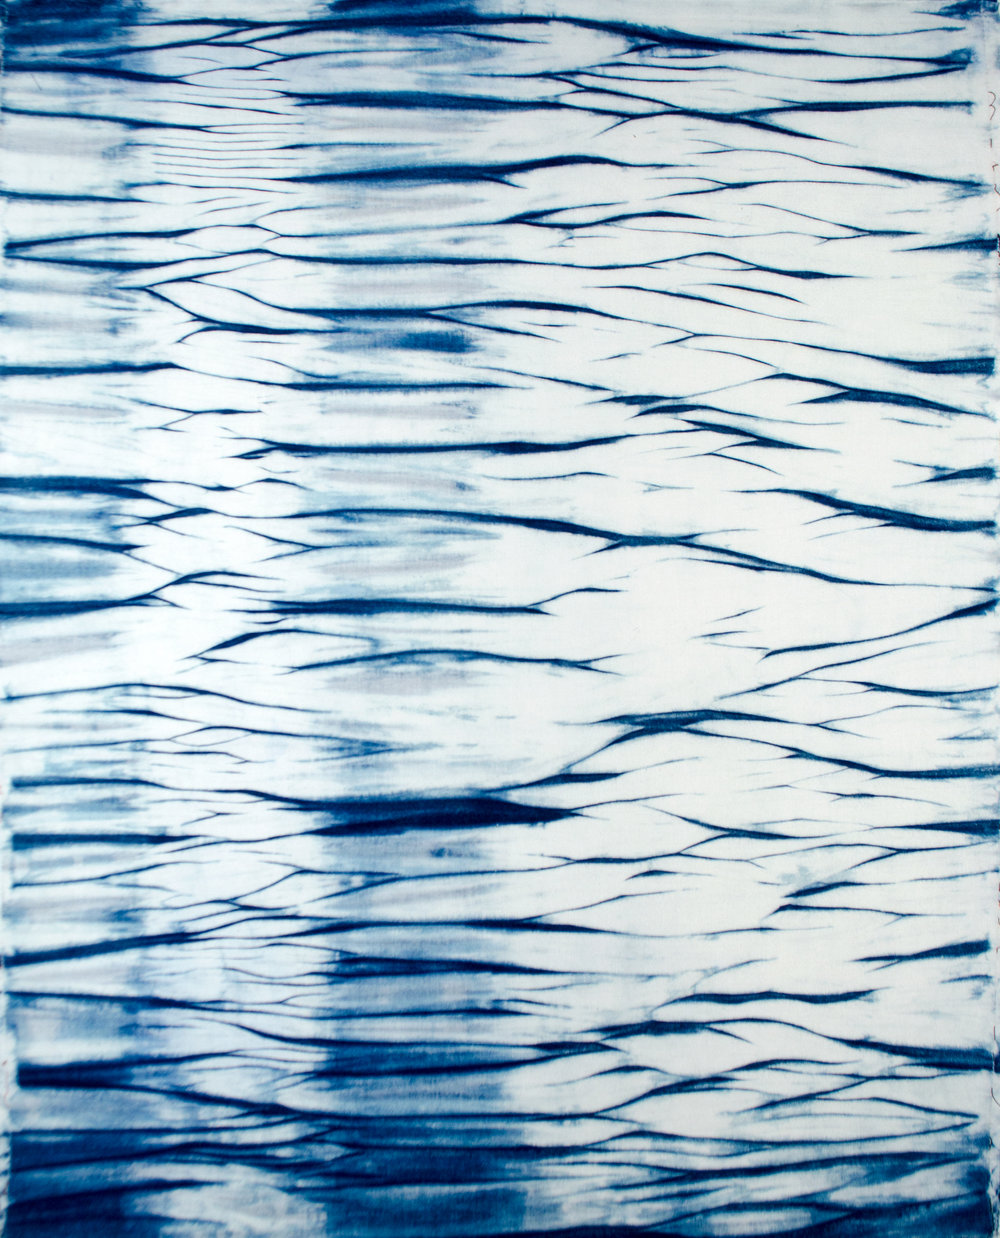 Kona Cotton Arashi Shibori Fat Quarter Dyed in the Indigo Vat by Carlyn Clark